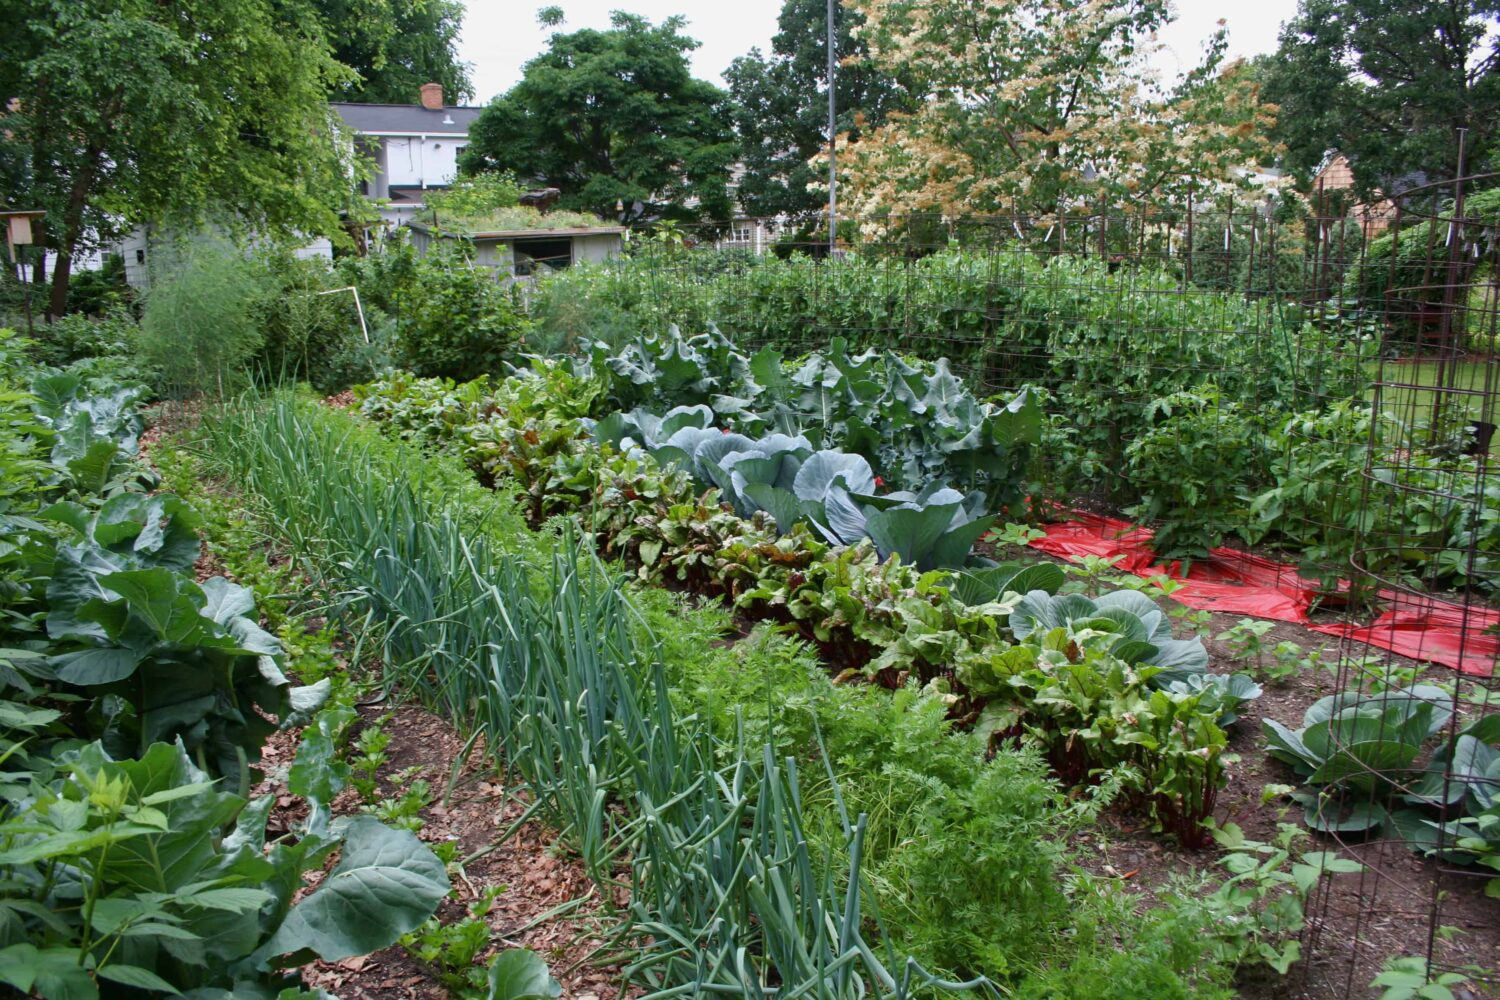 Making Your Garden the Star in Reducing Your Food Bills